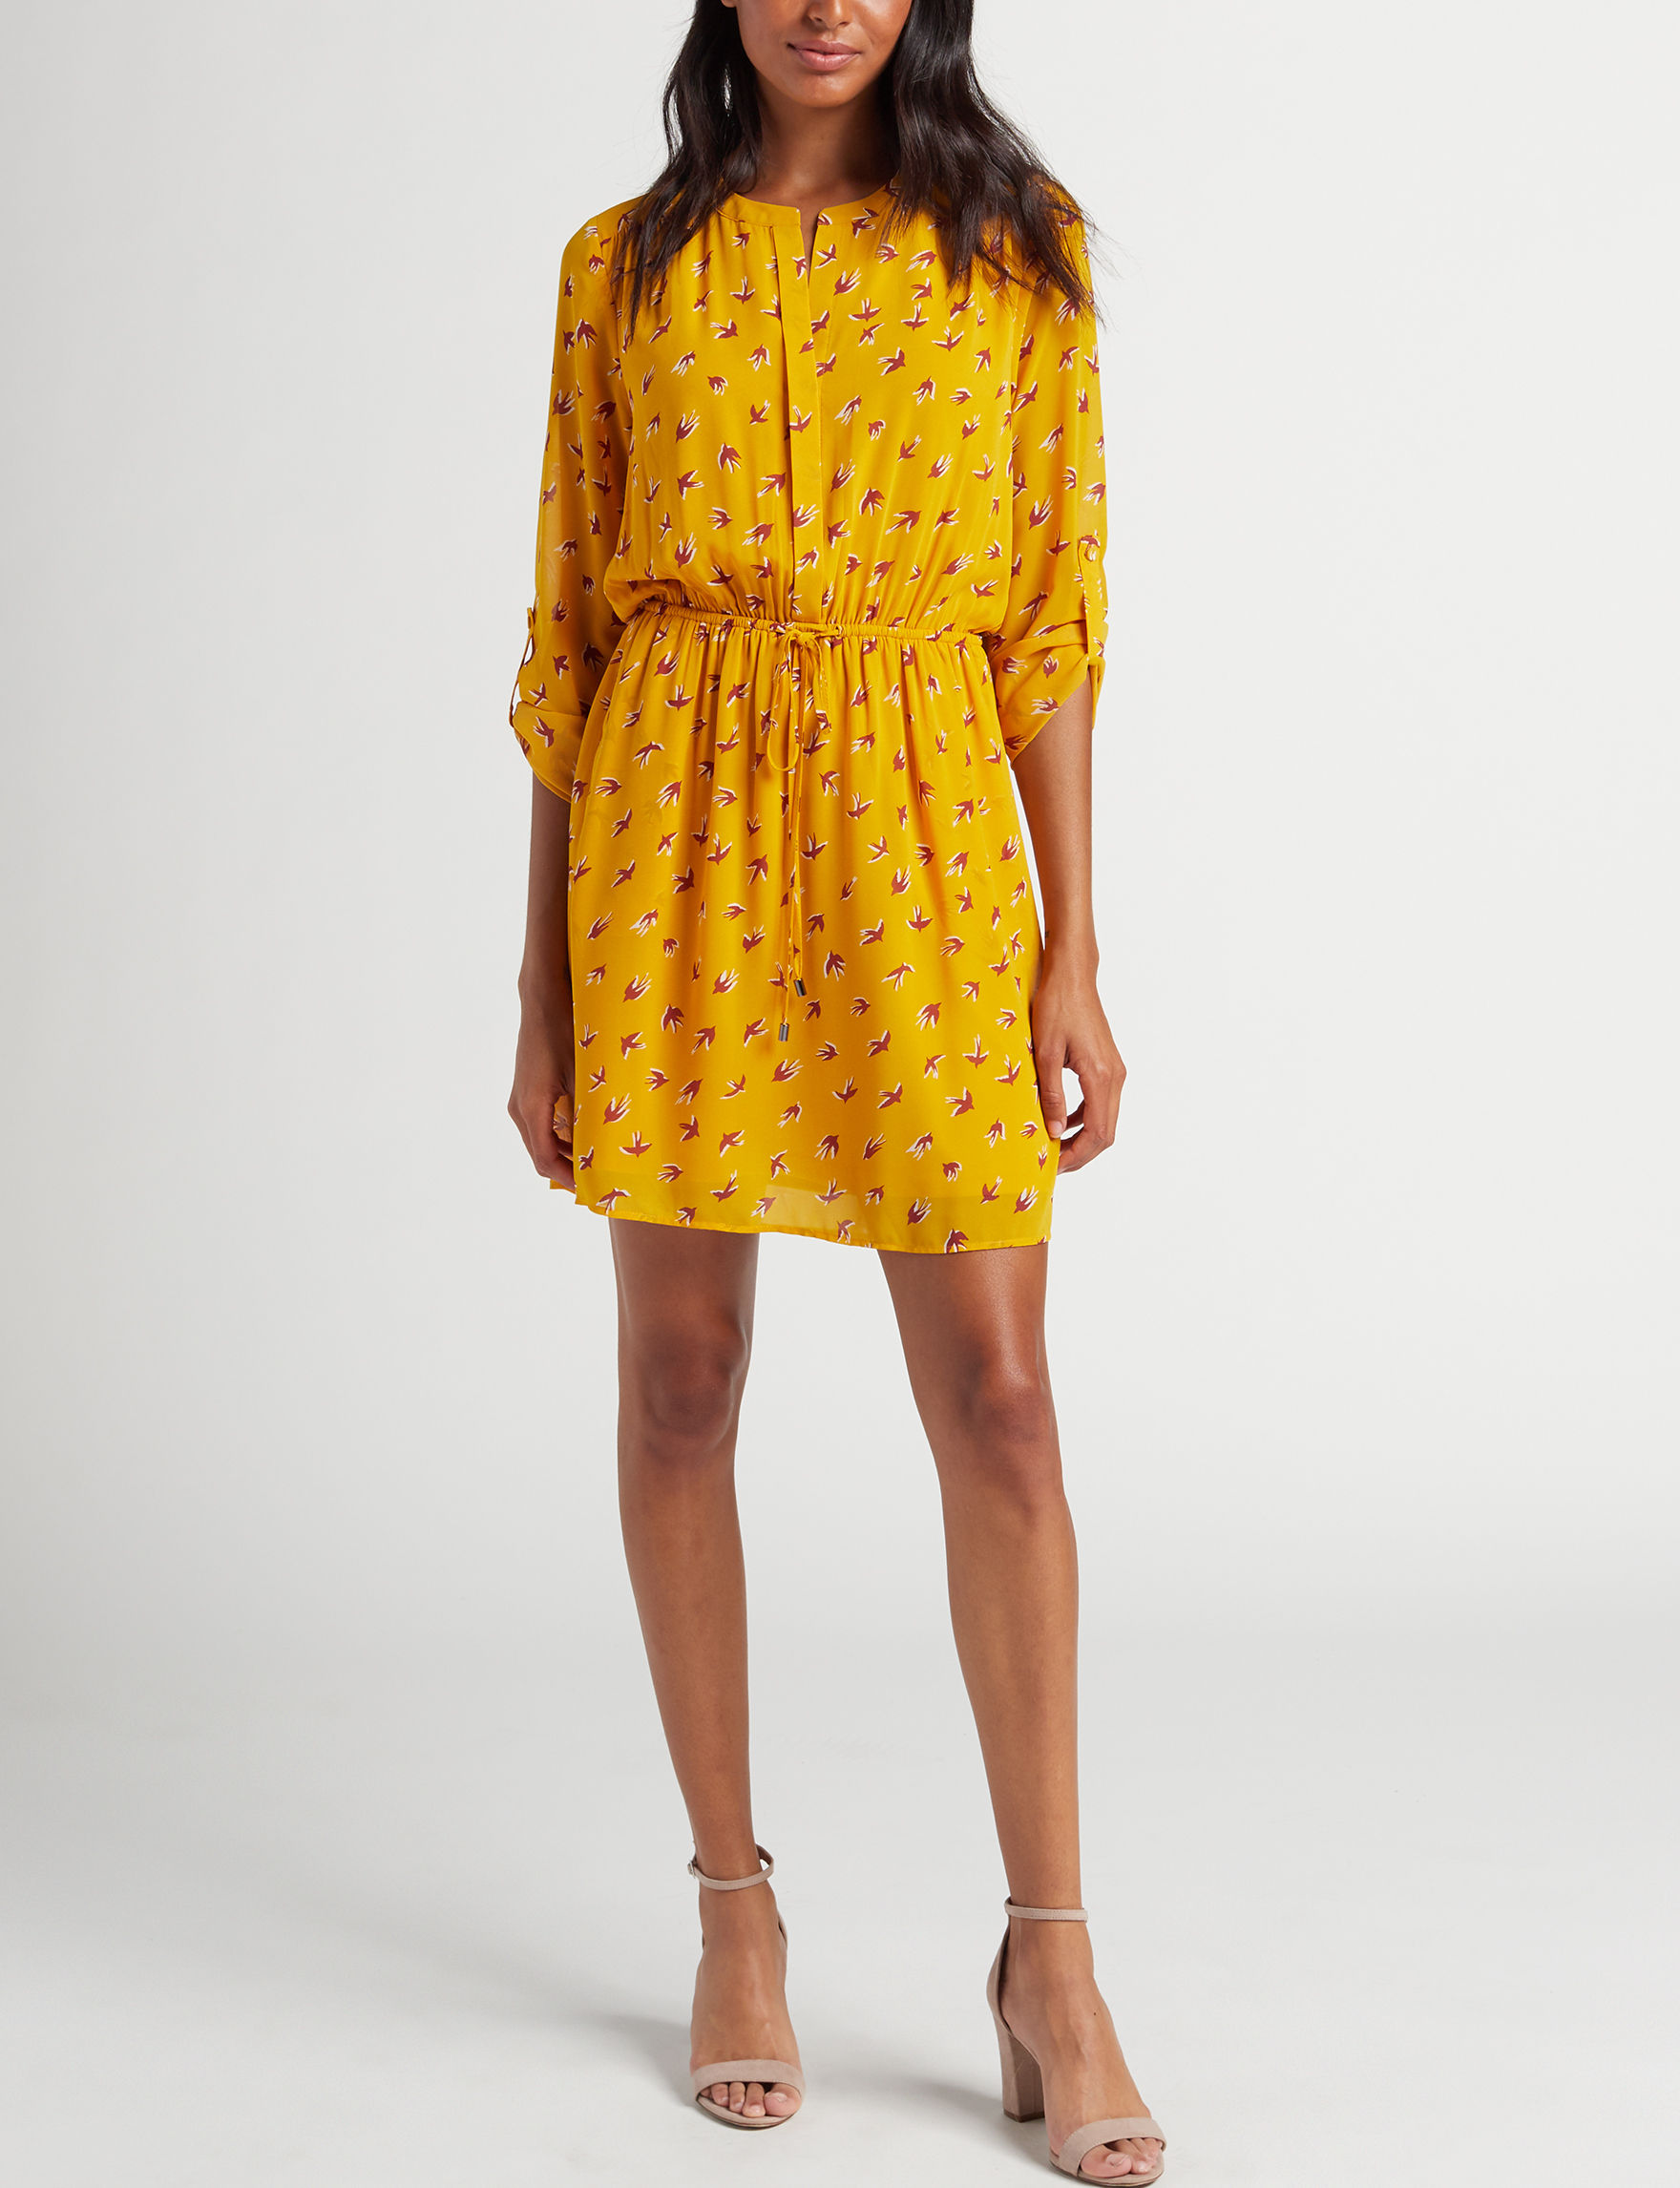 Signature Studio Yellow Everyday & Casual Fit & Flare Dresses